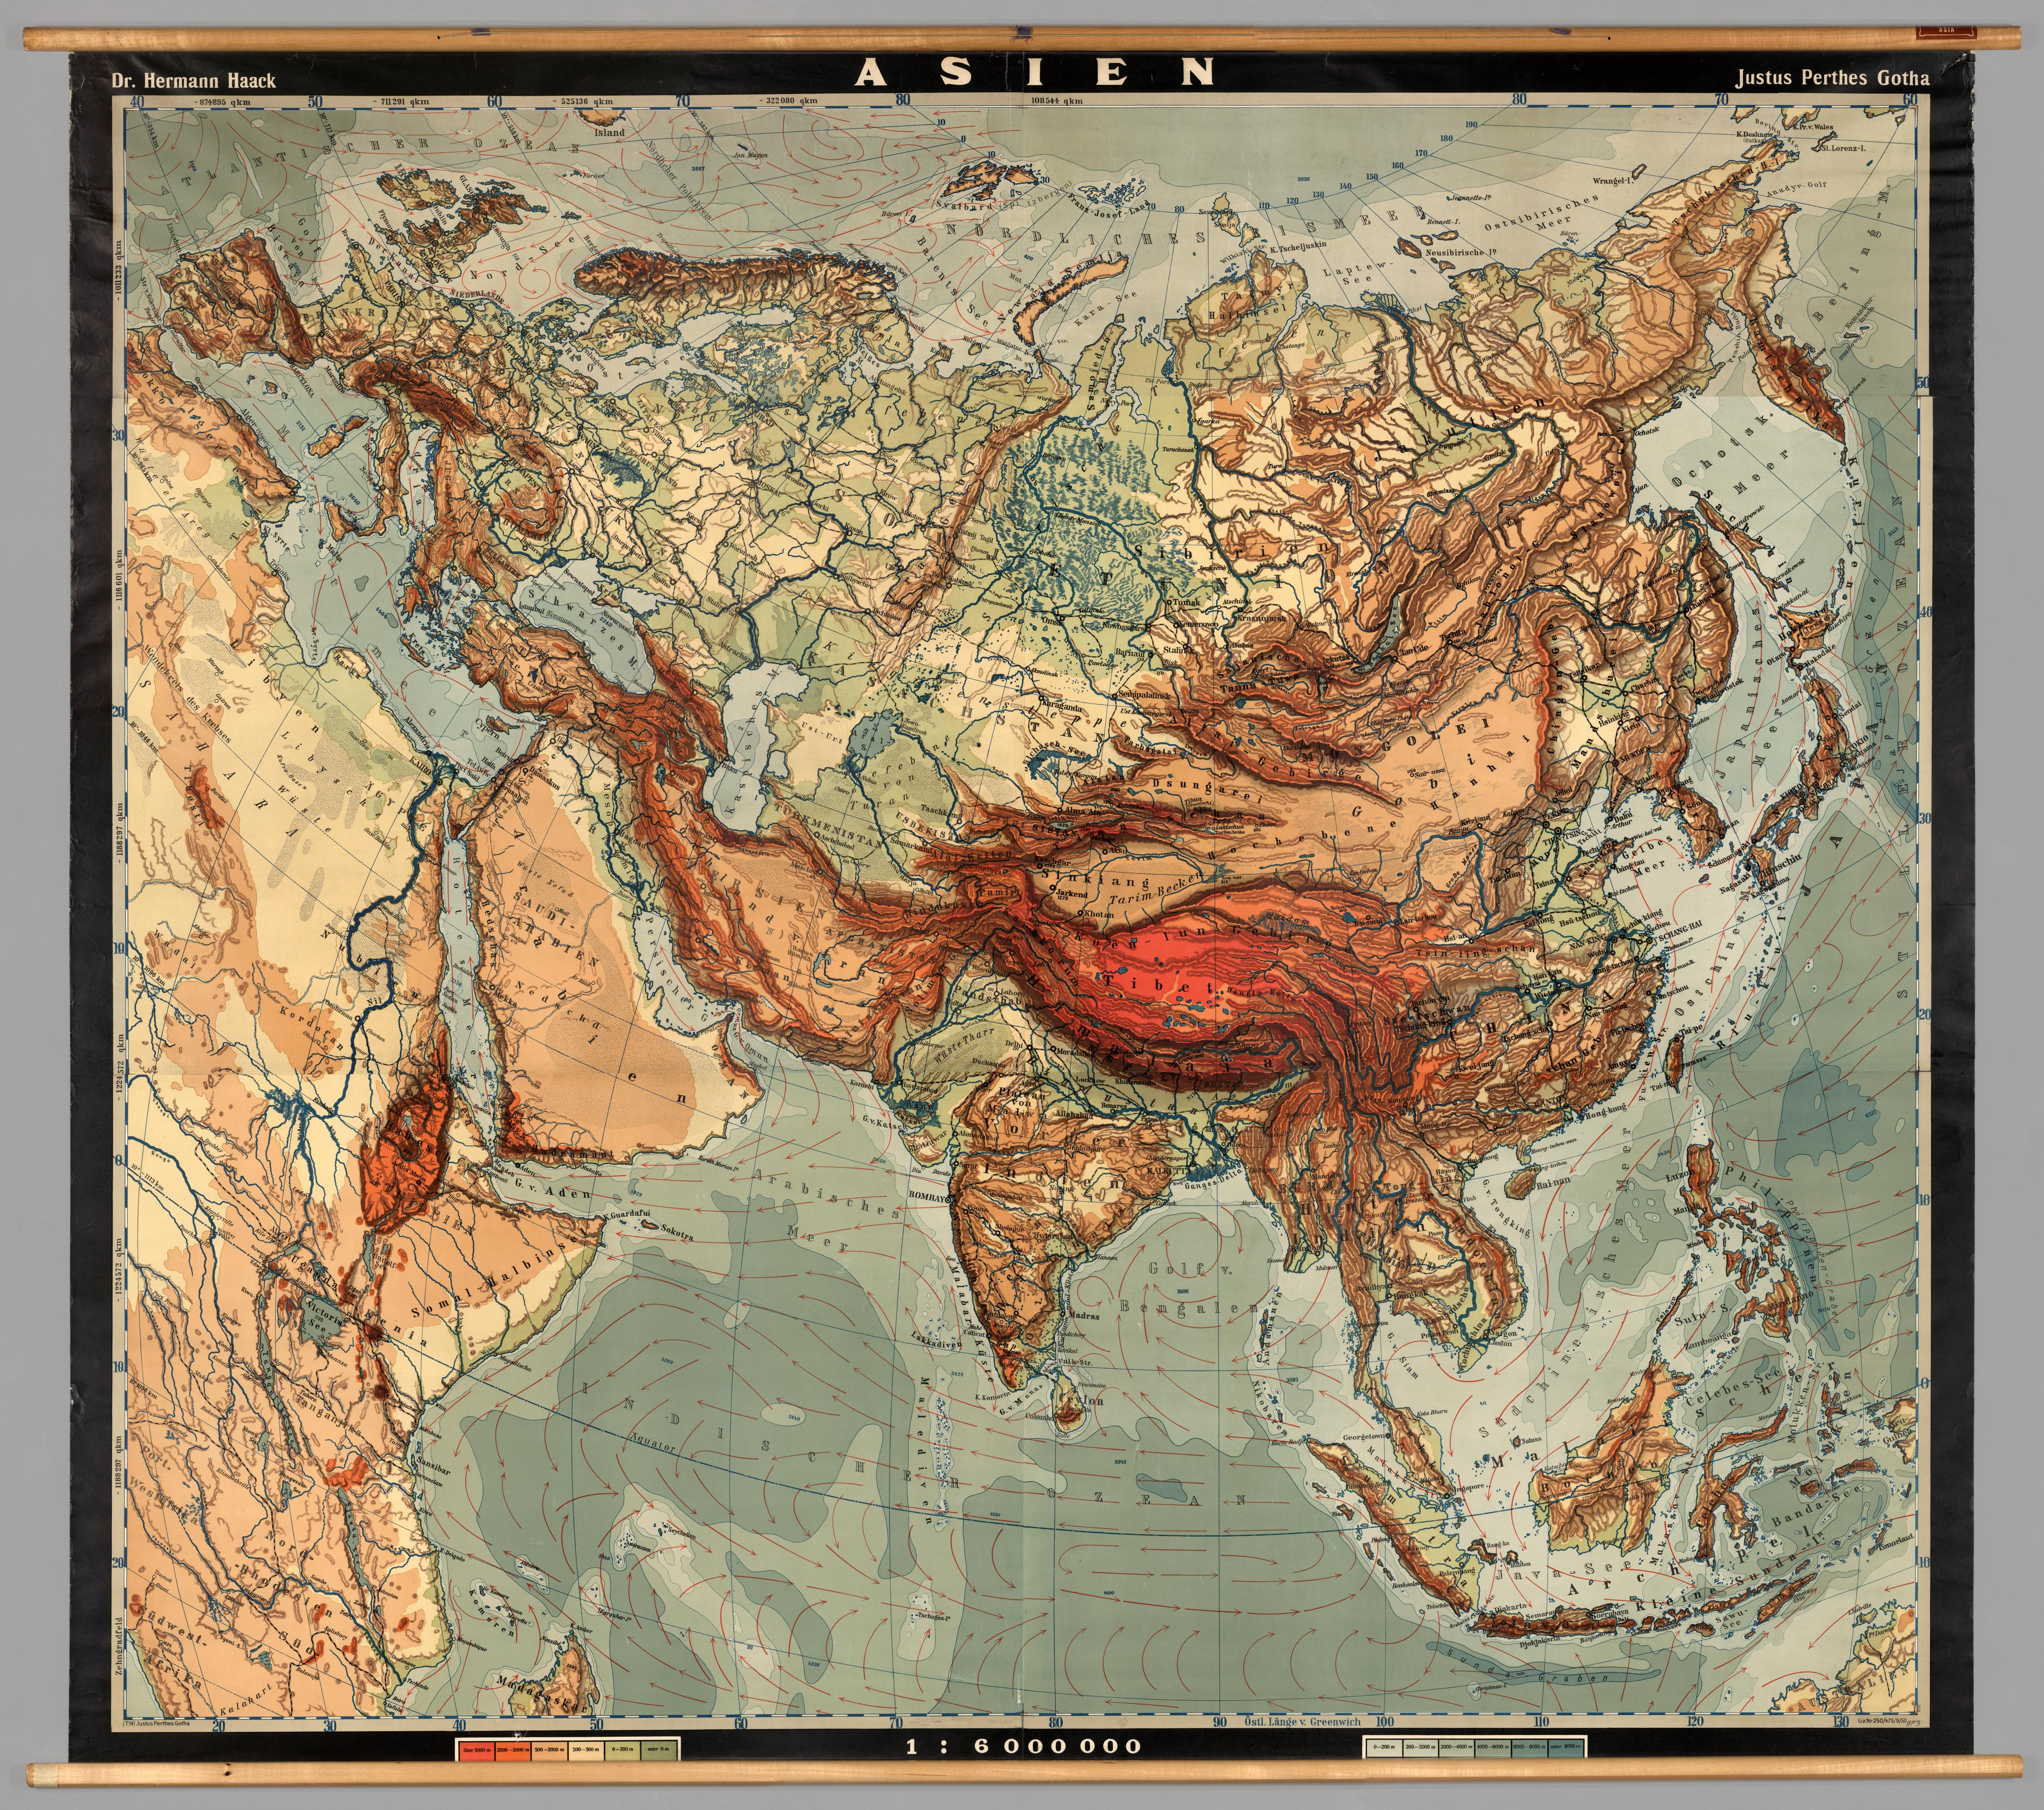 Map Of Asia 1950.Huge Wall Map Of Asia 1950 Mapporn